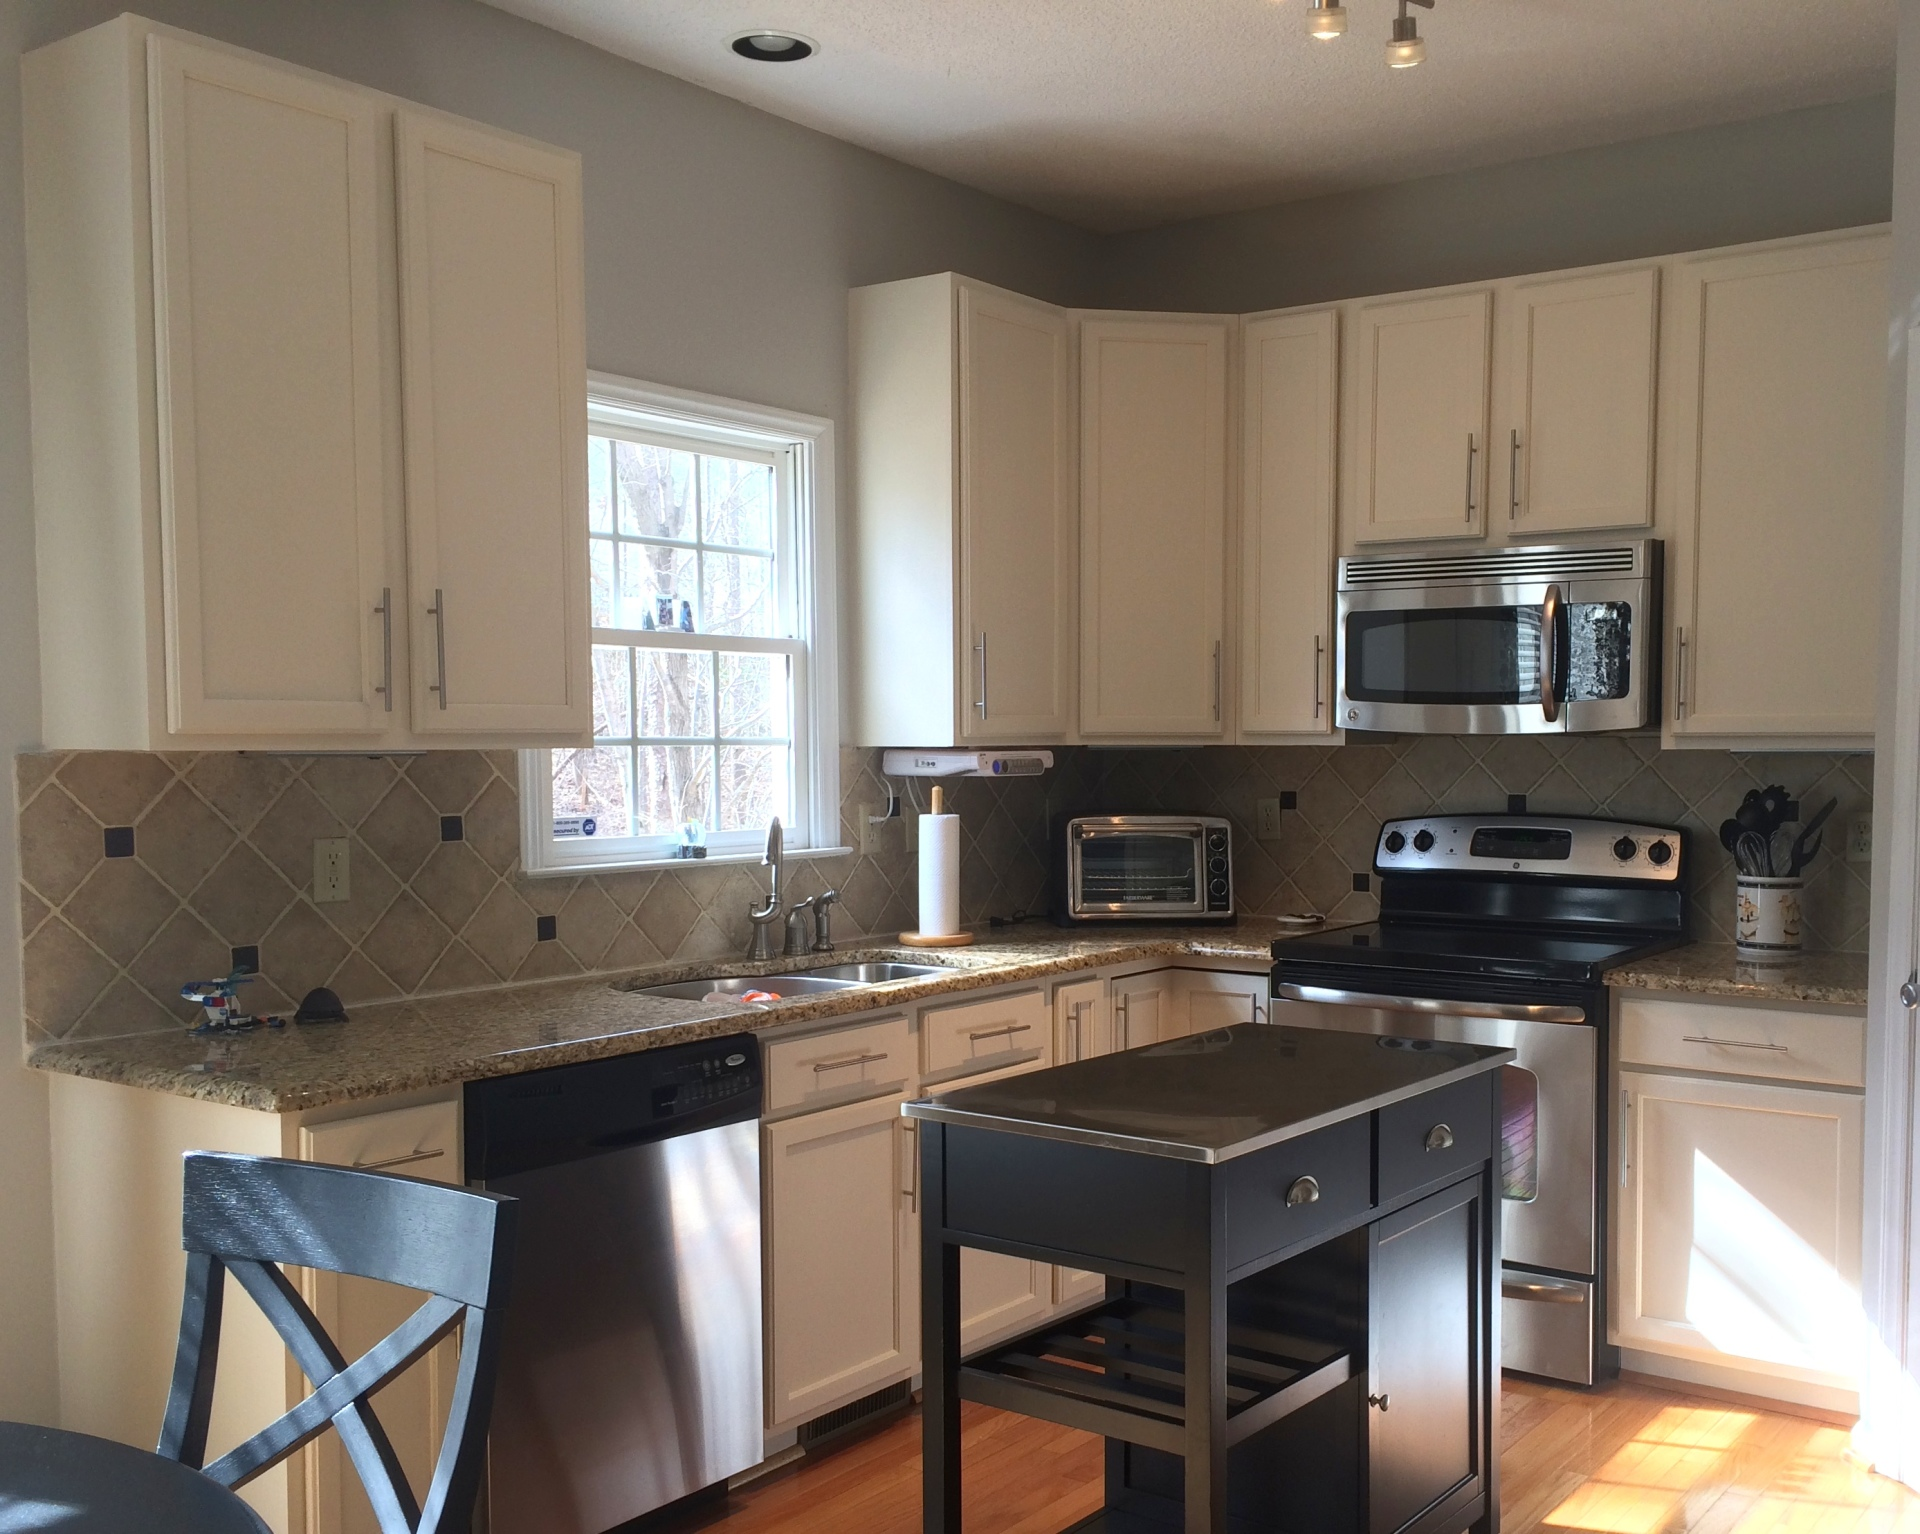 white painted oak kitchen cabinets dominion park raleigh deep river mercantile fabulous finishes by michelle